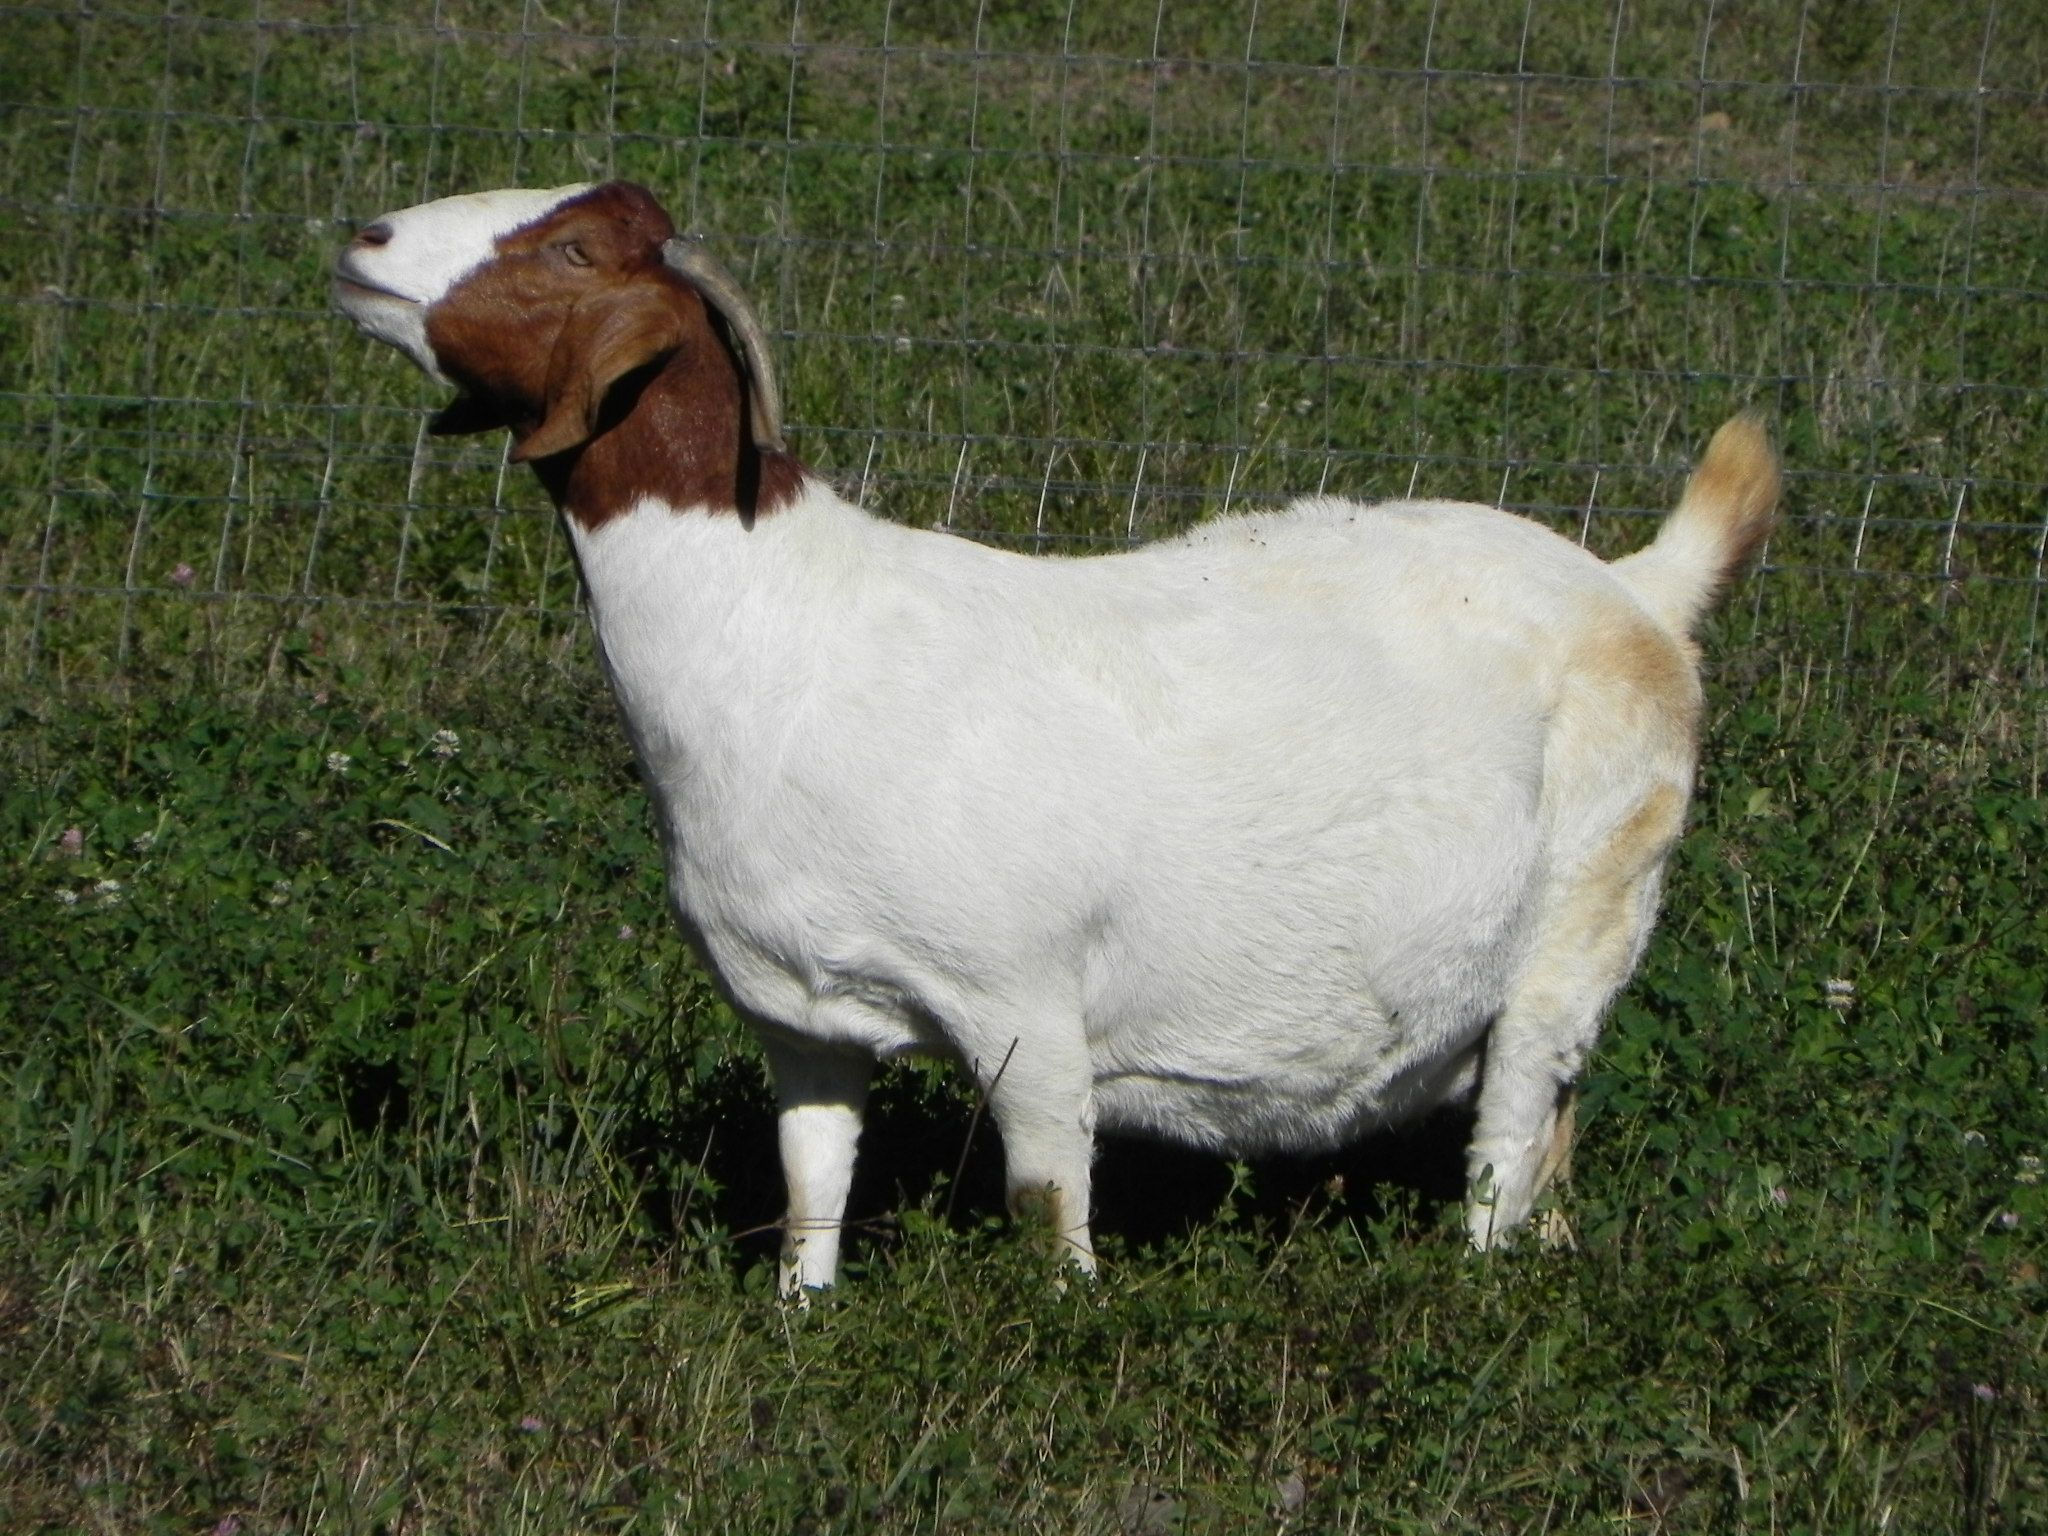 South African Boer Goat Does - Boer Goats - photo#8